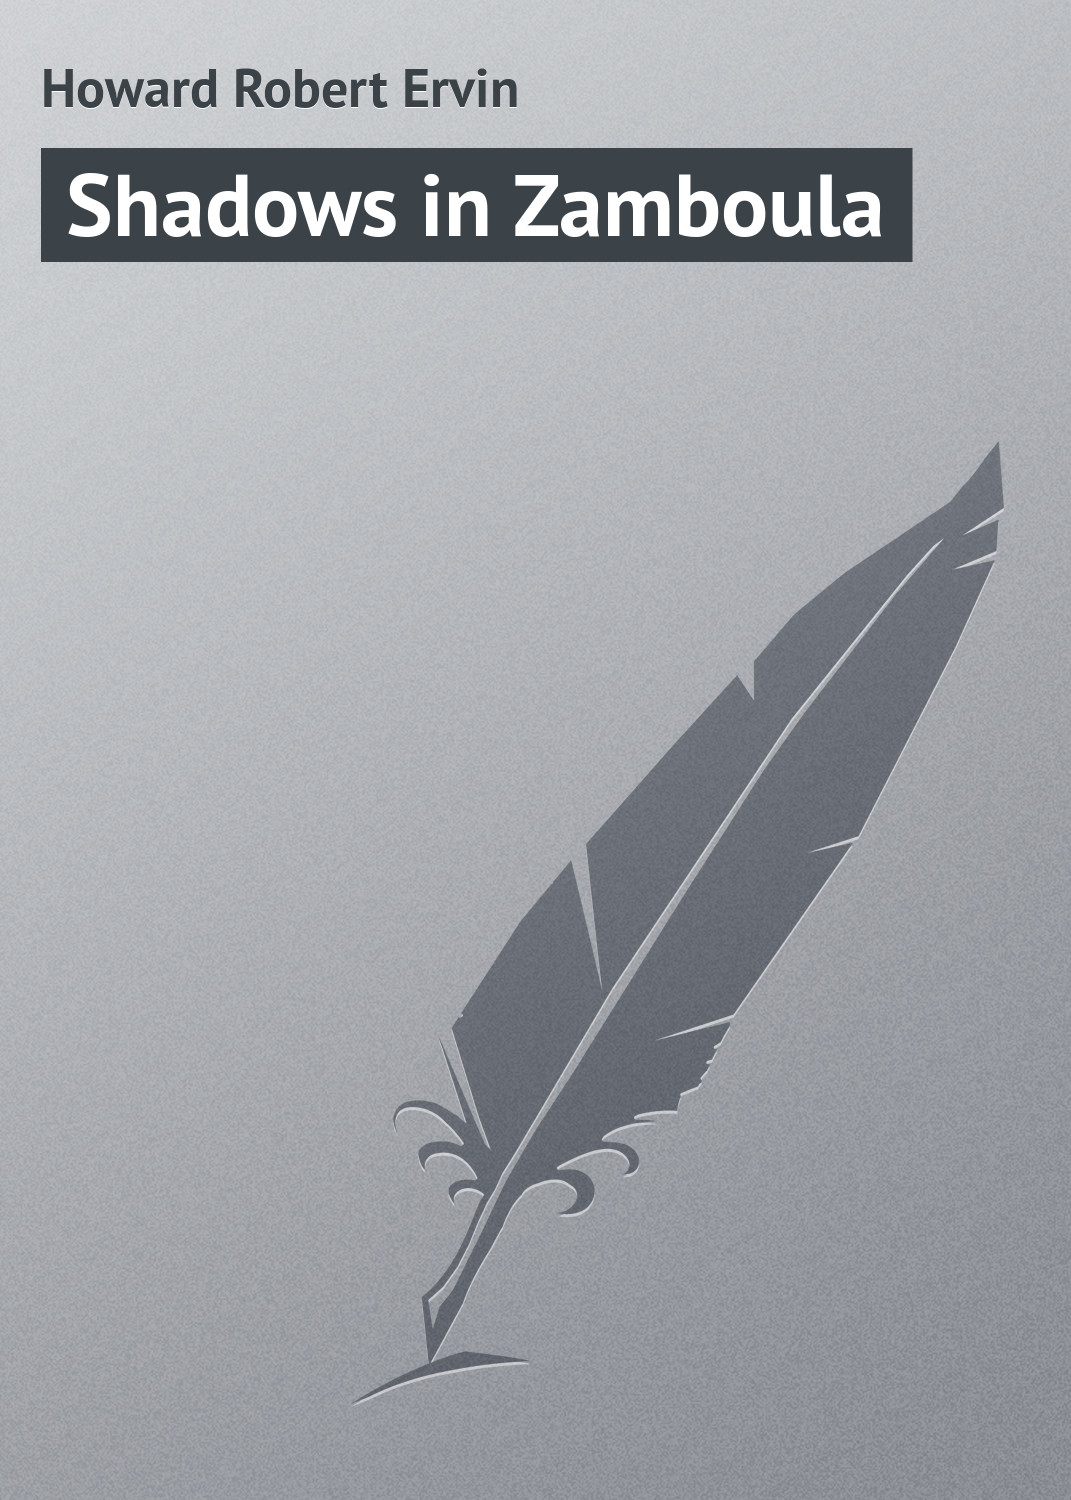 лучшая цена Howard Robert Ervin Shadows in Zamboula